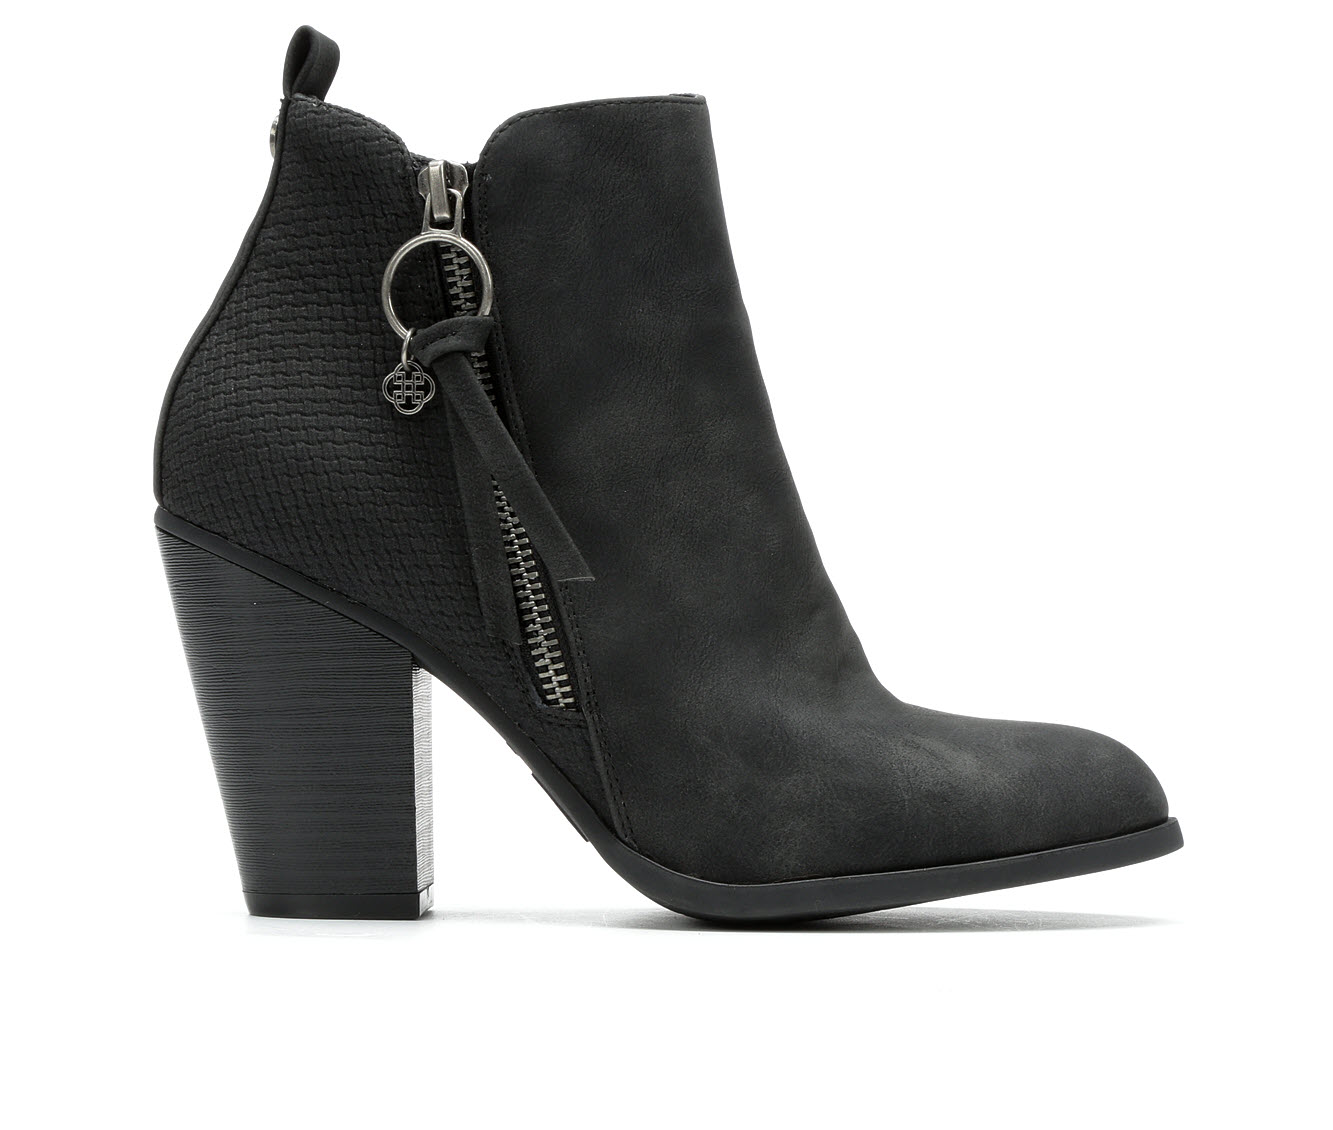 Daisy Fuentes Clay Women's Boots (Black - Faux Leather)